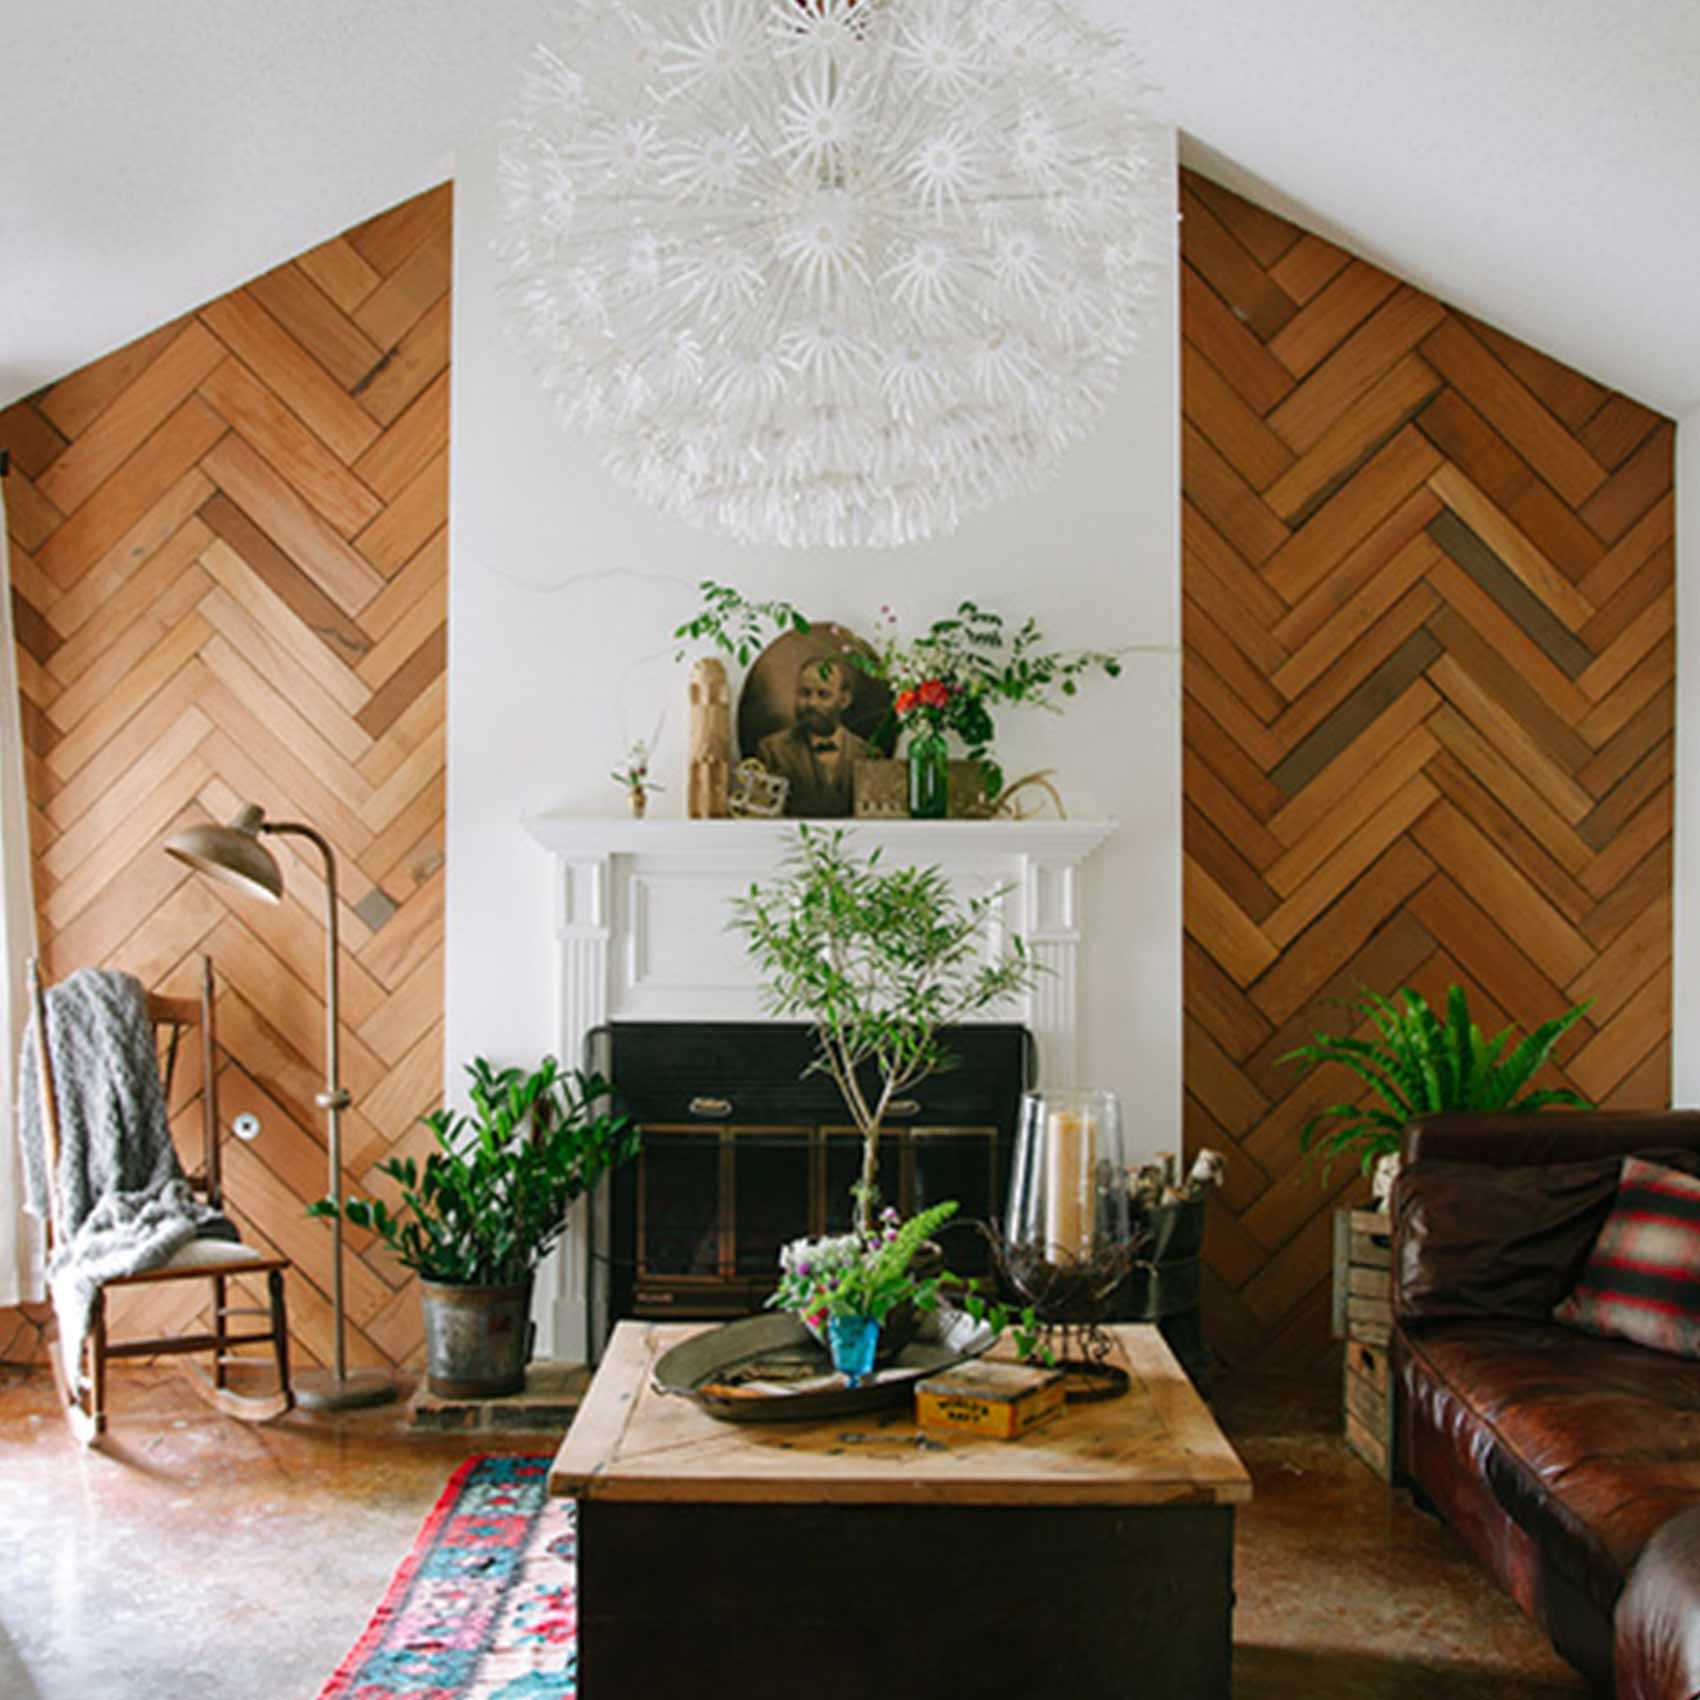 Design from A to Z: P is for Paneling, Design*Sponge